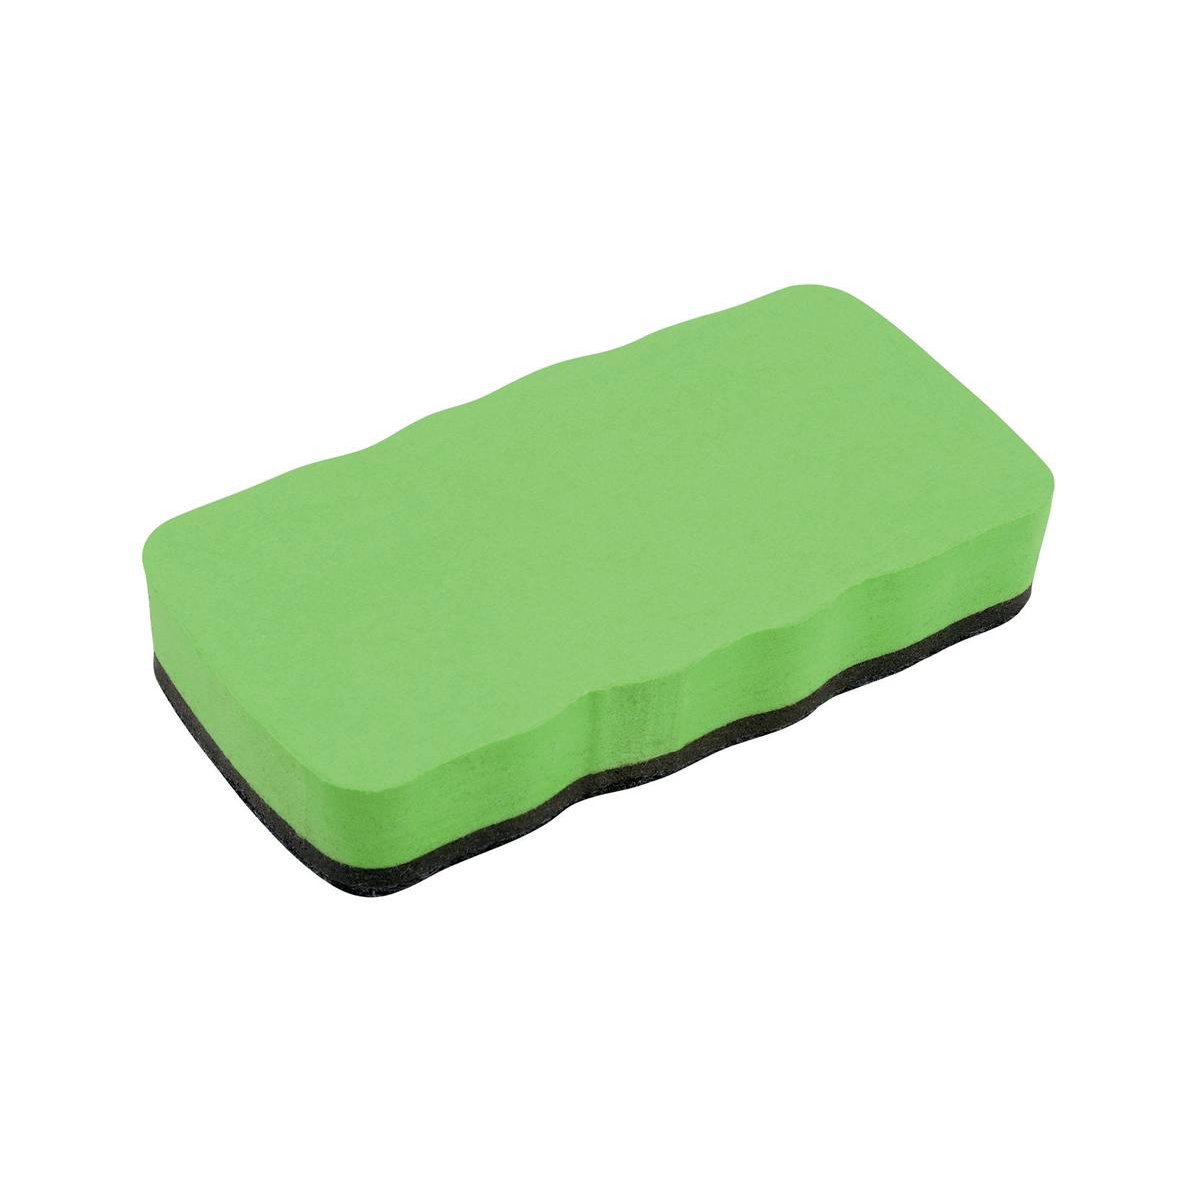 5 Star Elite Drywipe Eraser Magnetic Lime Green